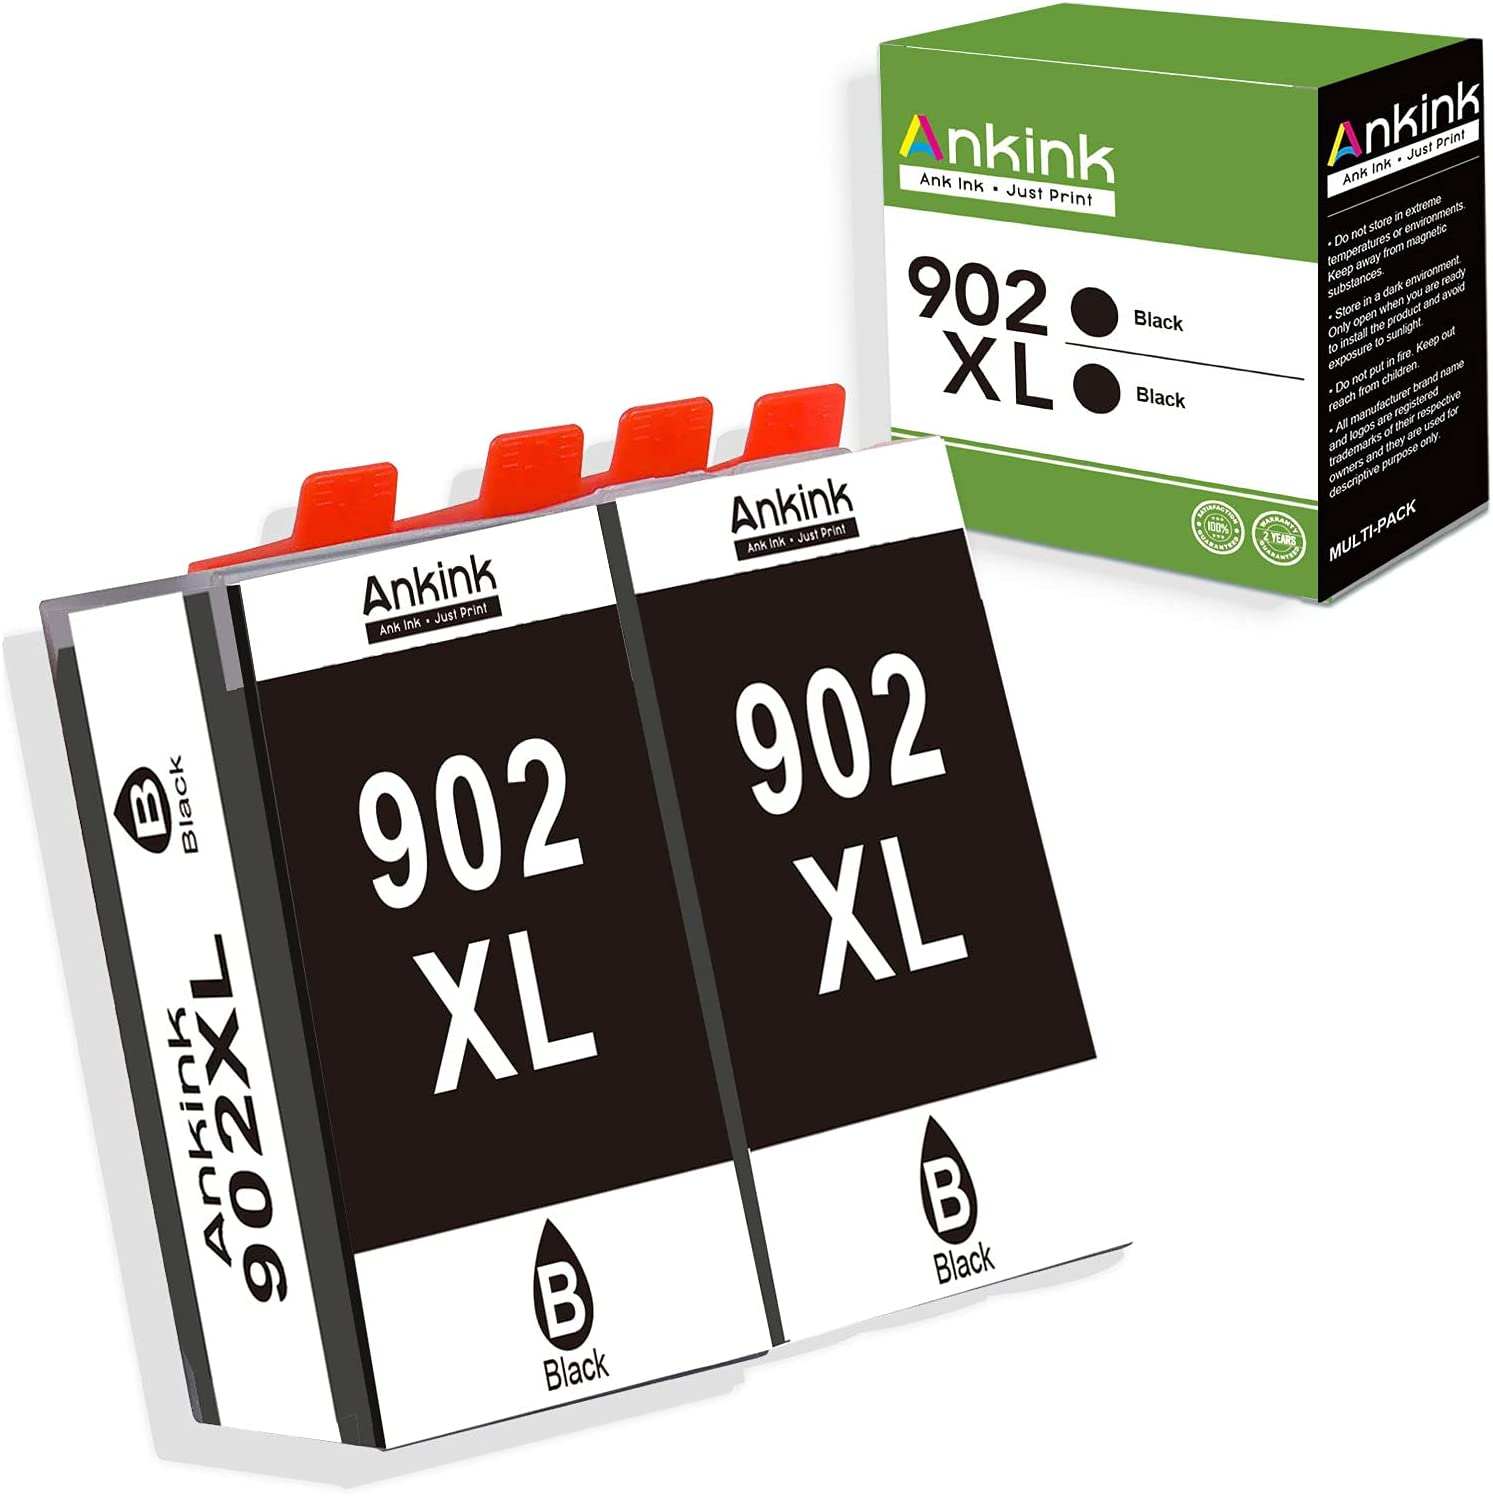 Ankink Compatible Ink Cartridge Replacement for HP 902XL 902 XL Ink Cartridge for Officejet Pro 6978 6968 6962 6958 6970 6950 6960 HP 902 Ink Cartridges Printer Combo (2 Black 2 Pack)